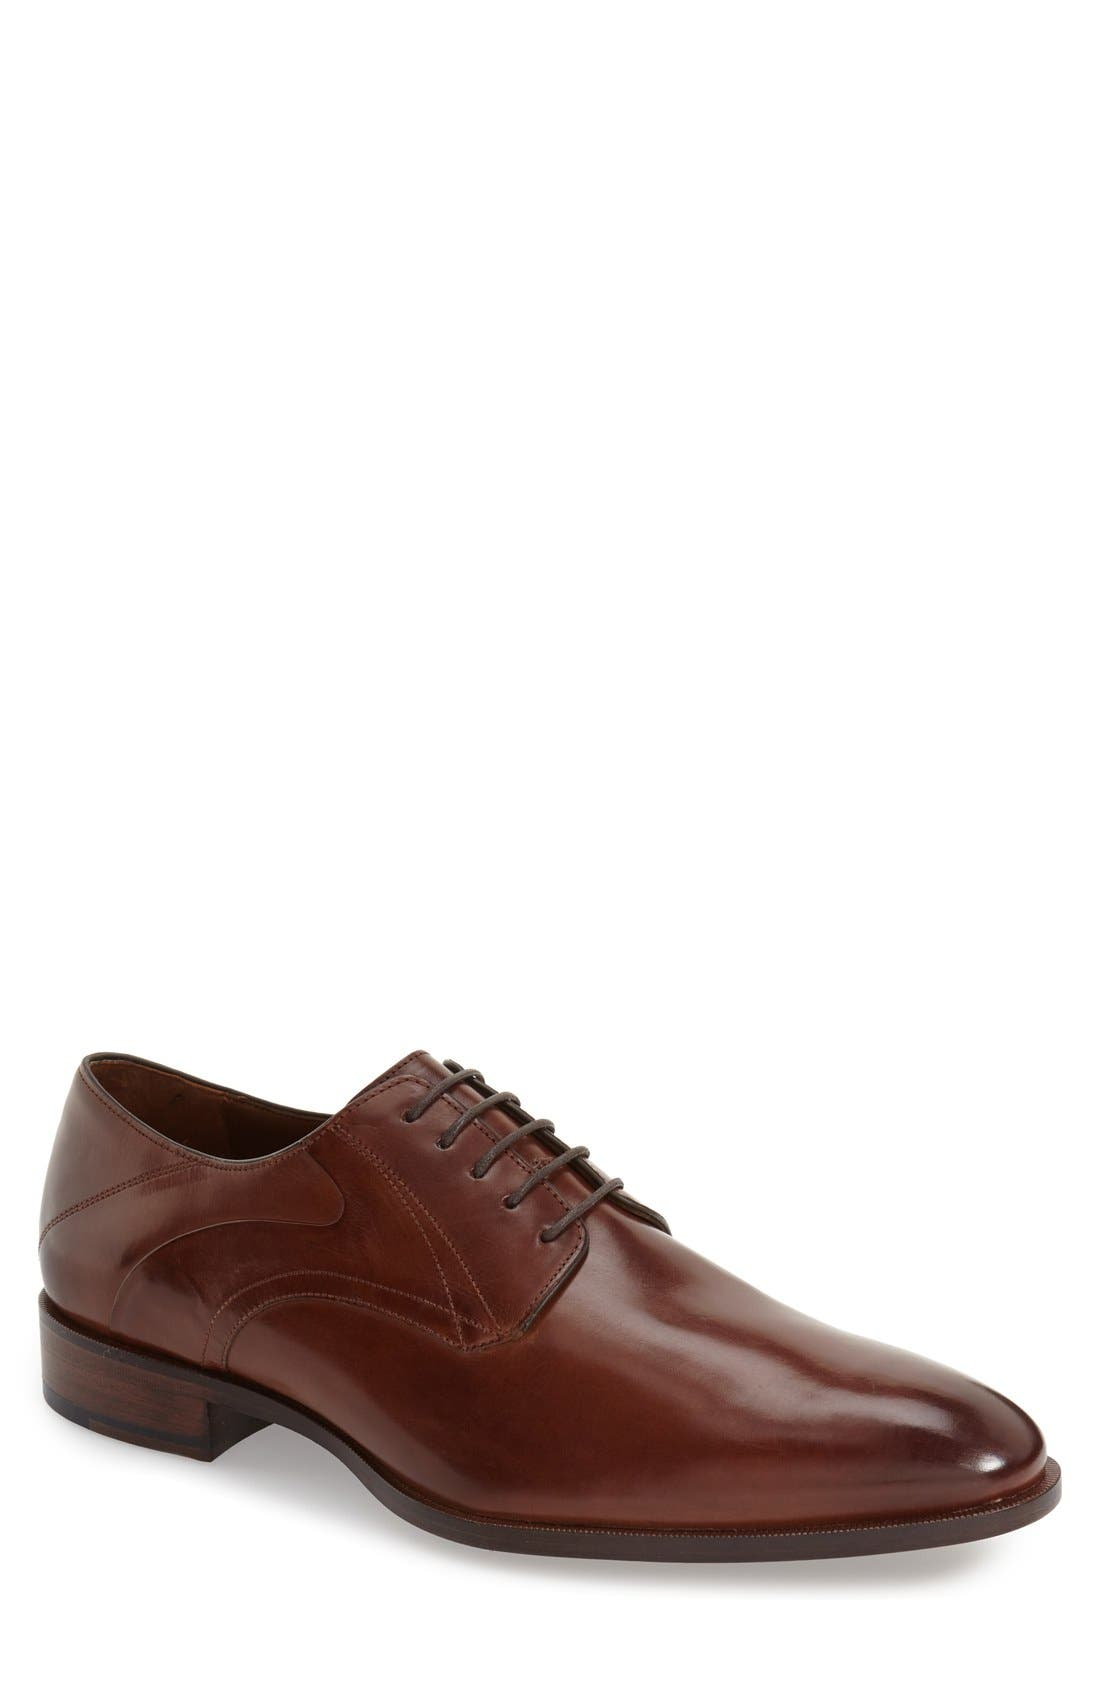 'Nolen' Plain Toe Derby,                         Main,                         color, 206